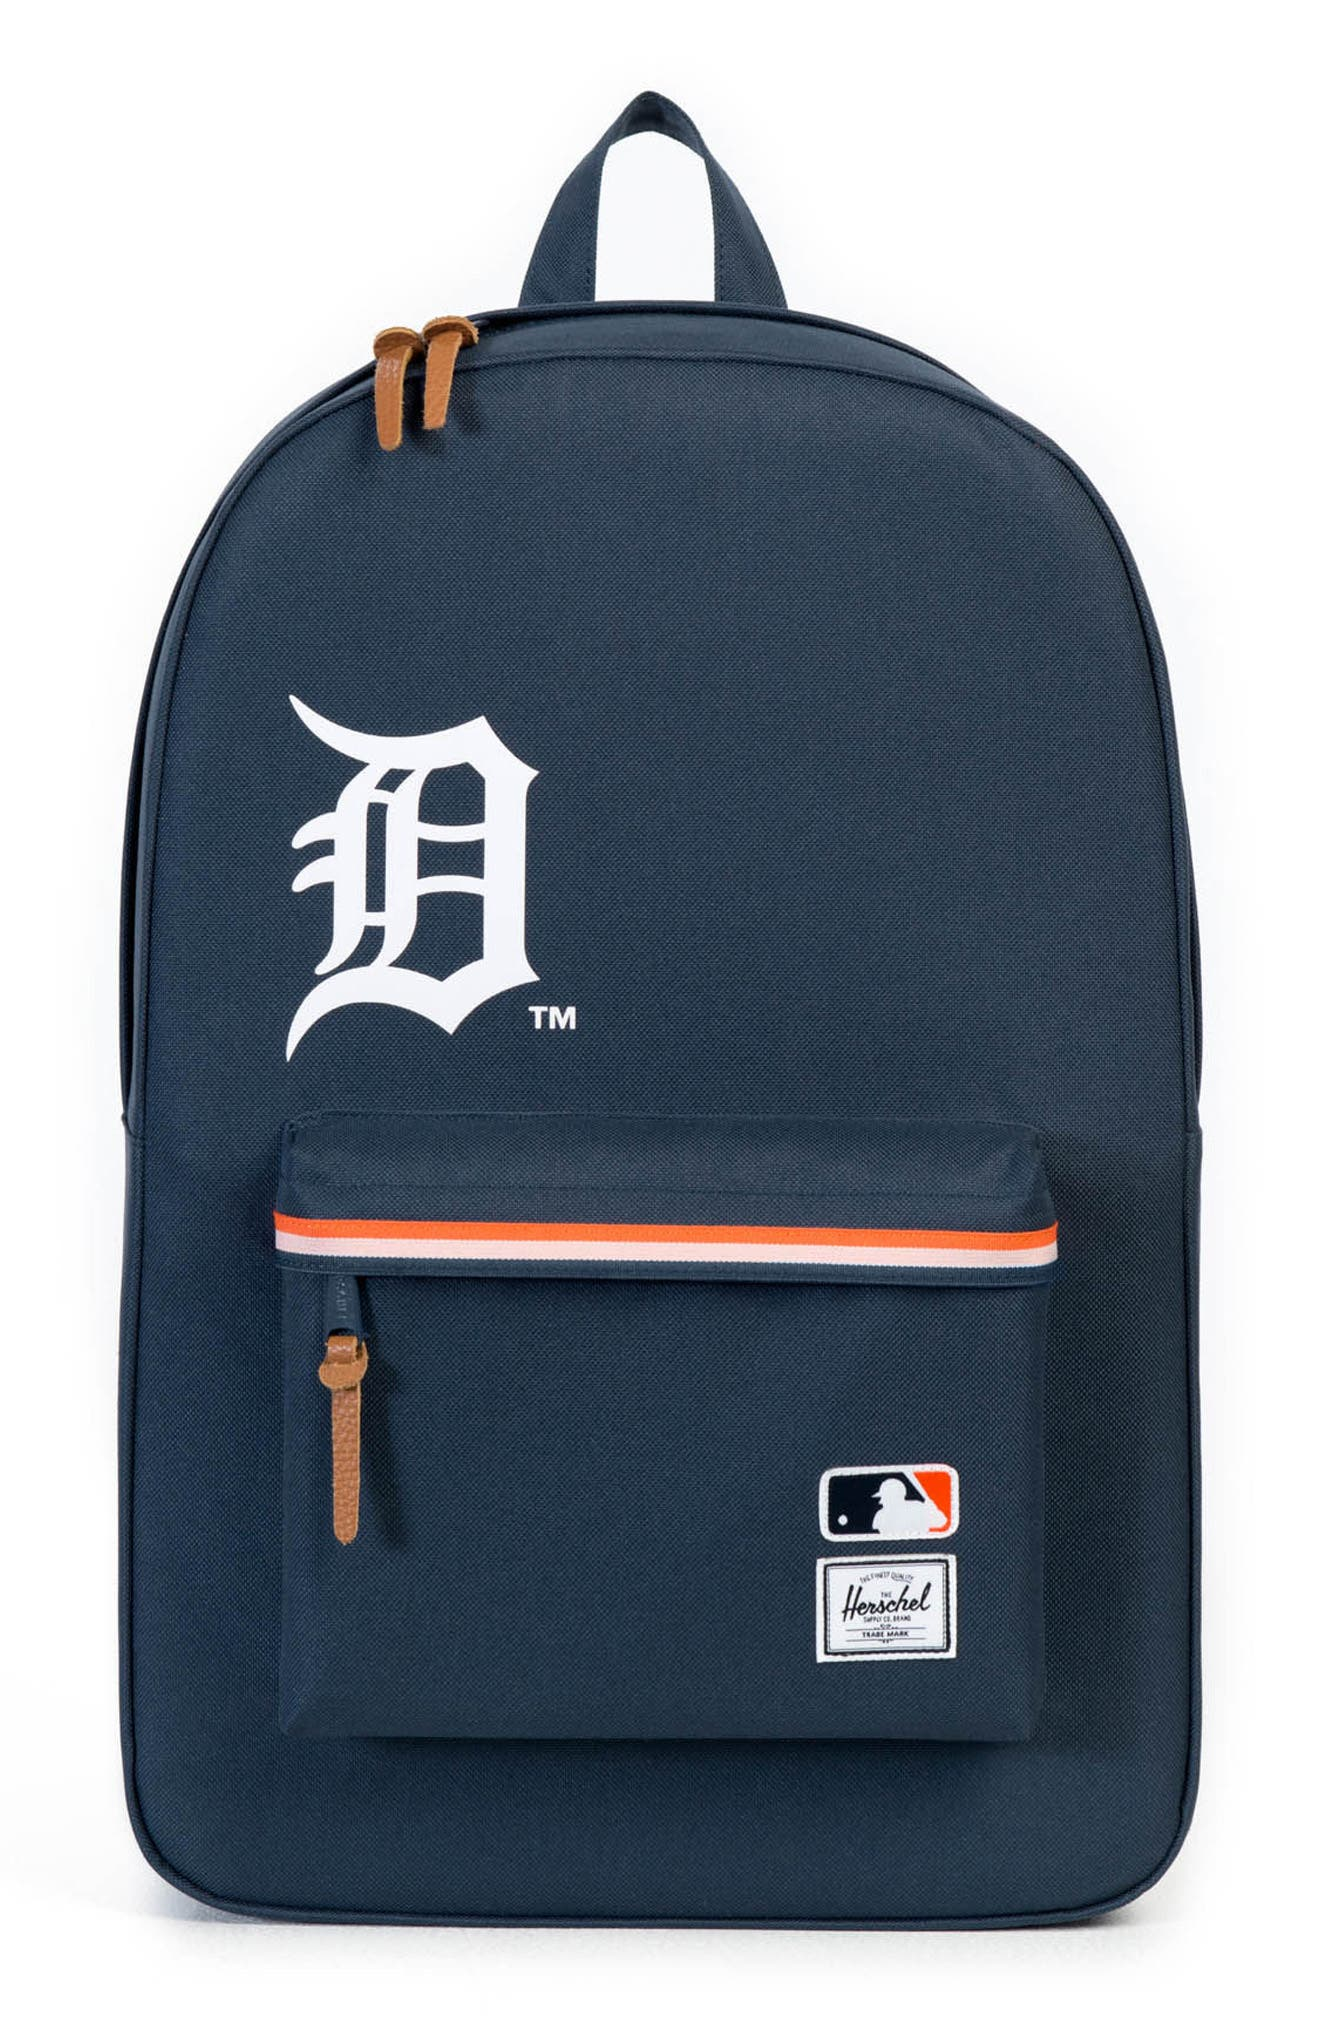 Heritage Detroit Tigers Backpack,                             Main thumbnail 1, color,                             Detroit Tigers